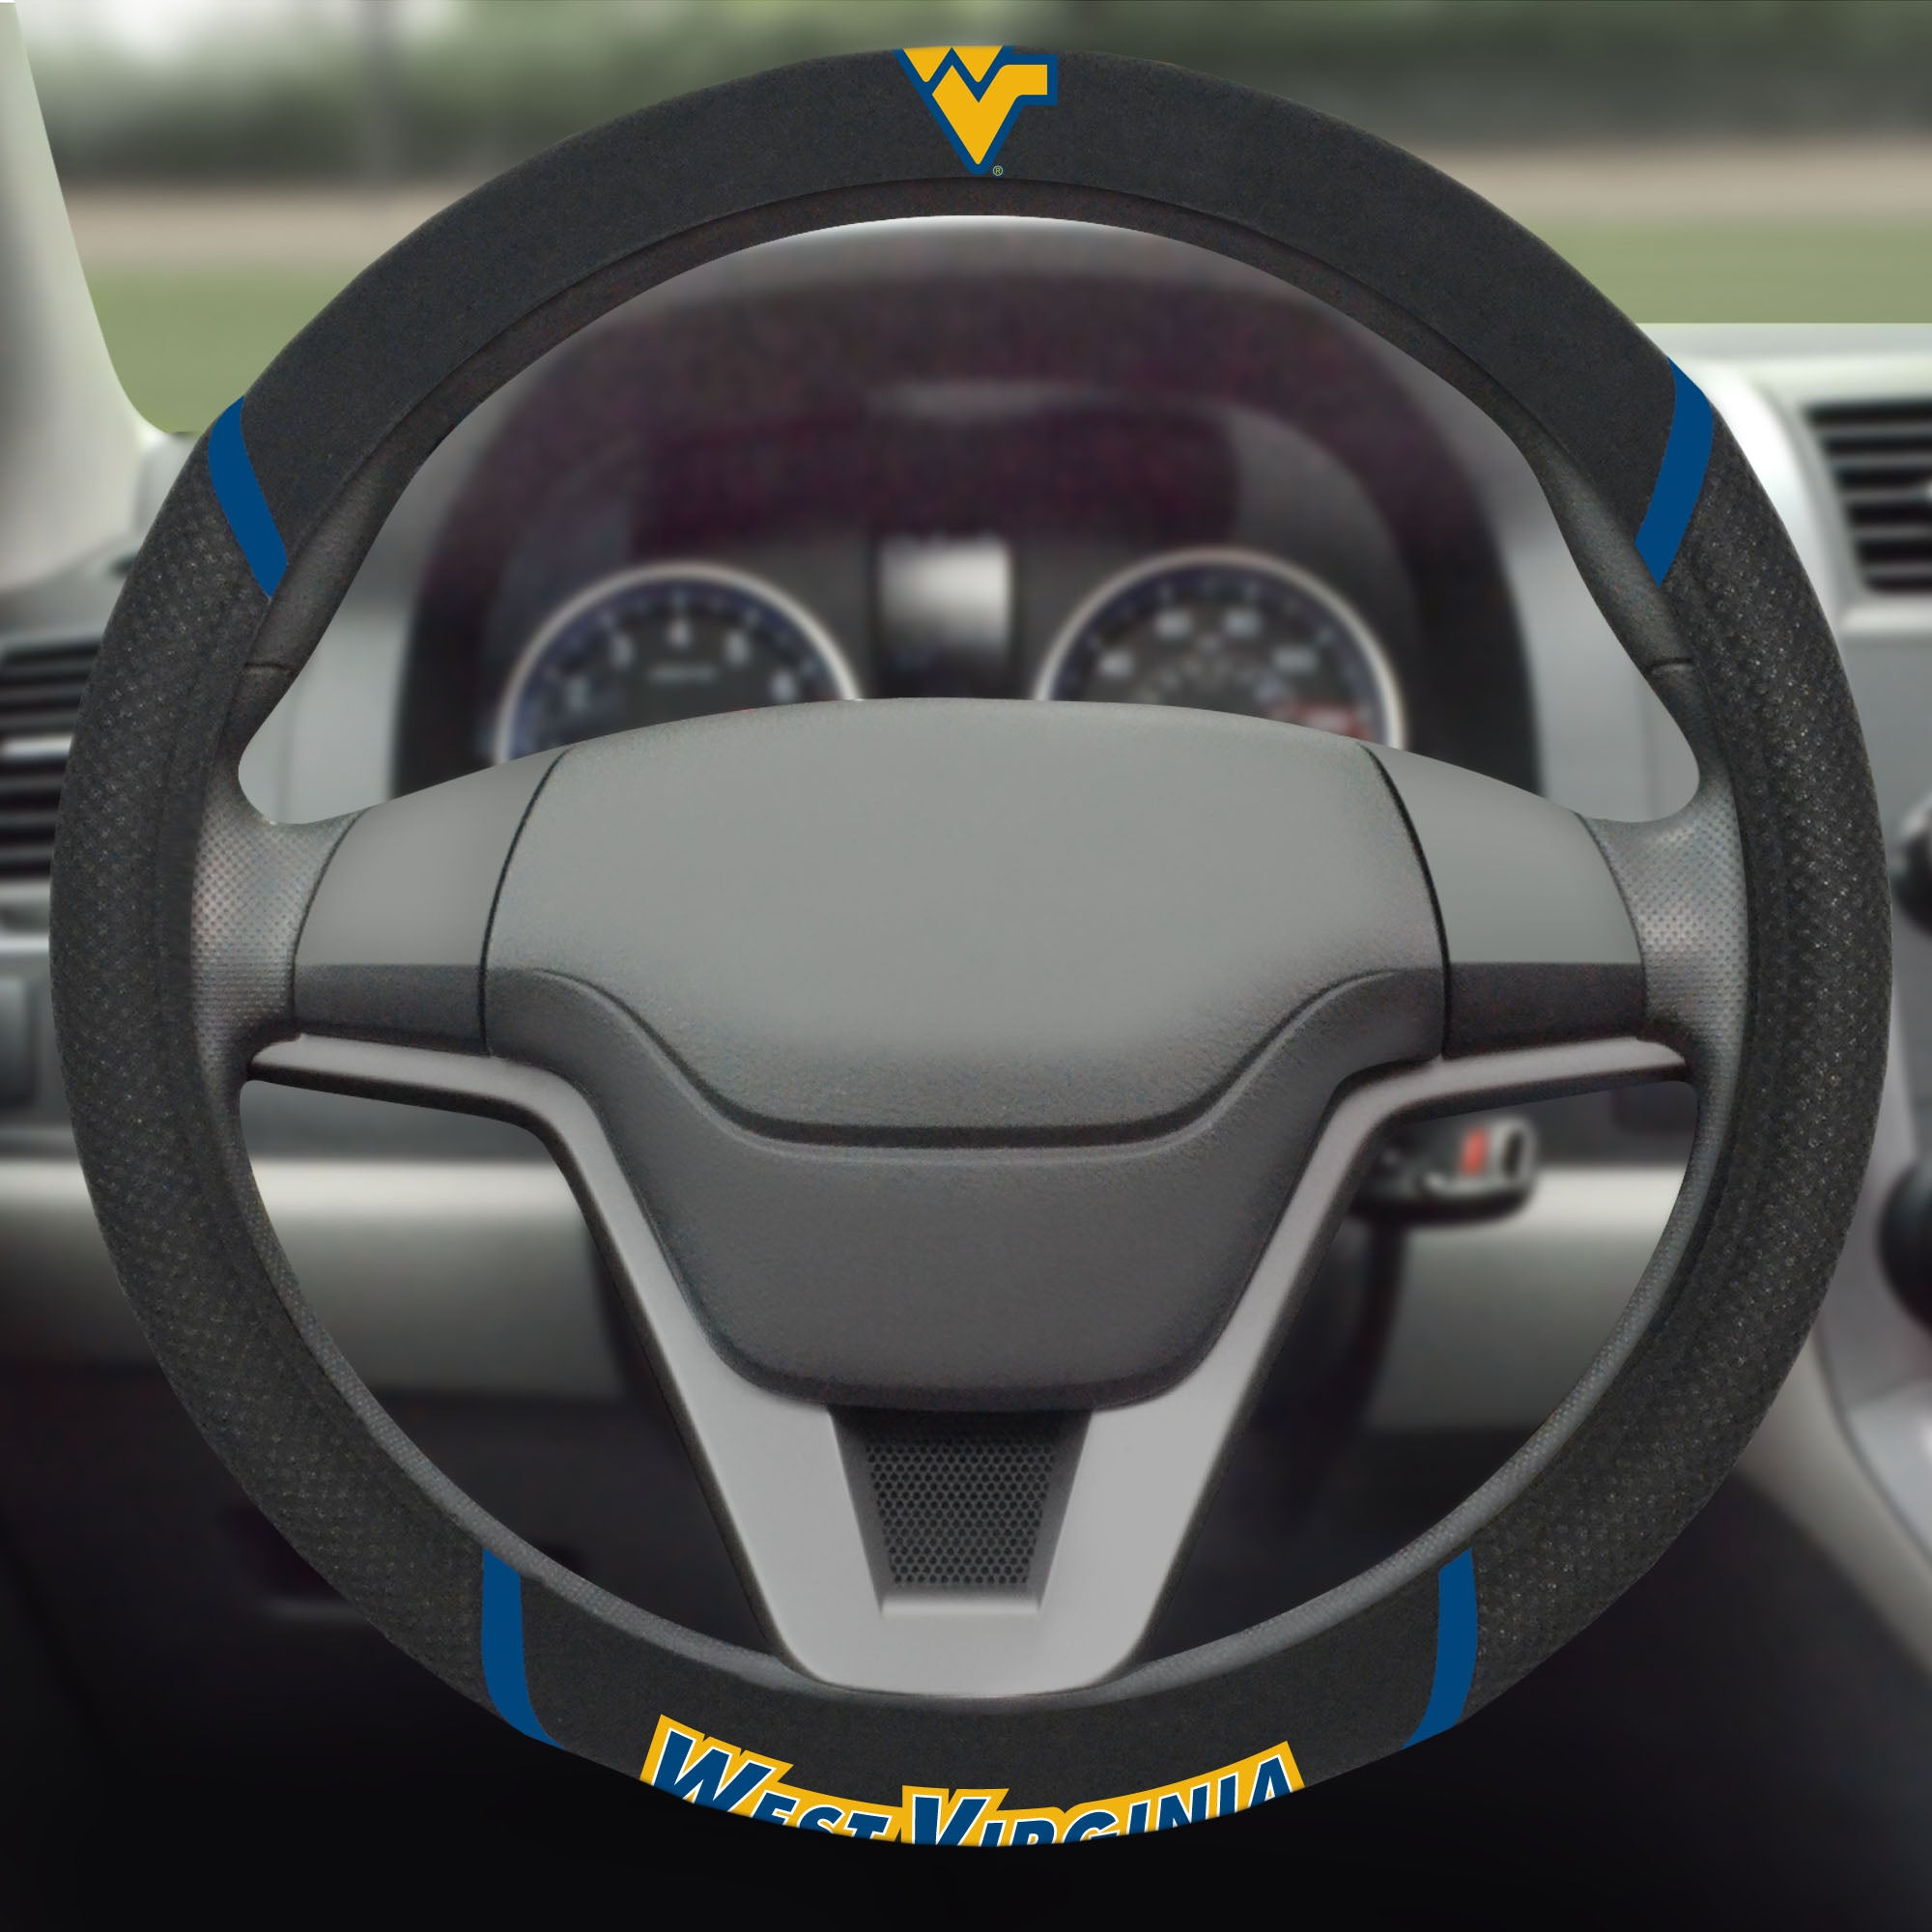 West Virginia University Steering Wheel Cover 15